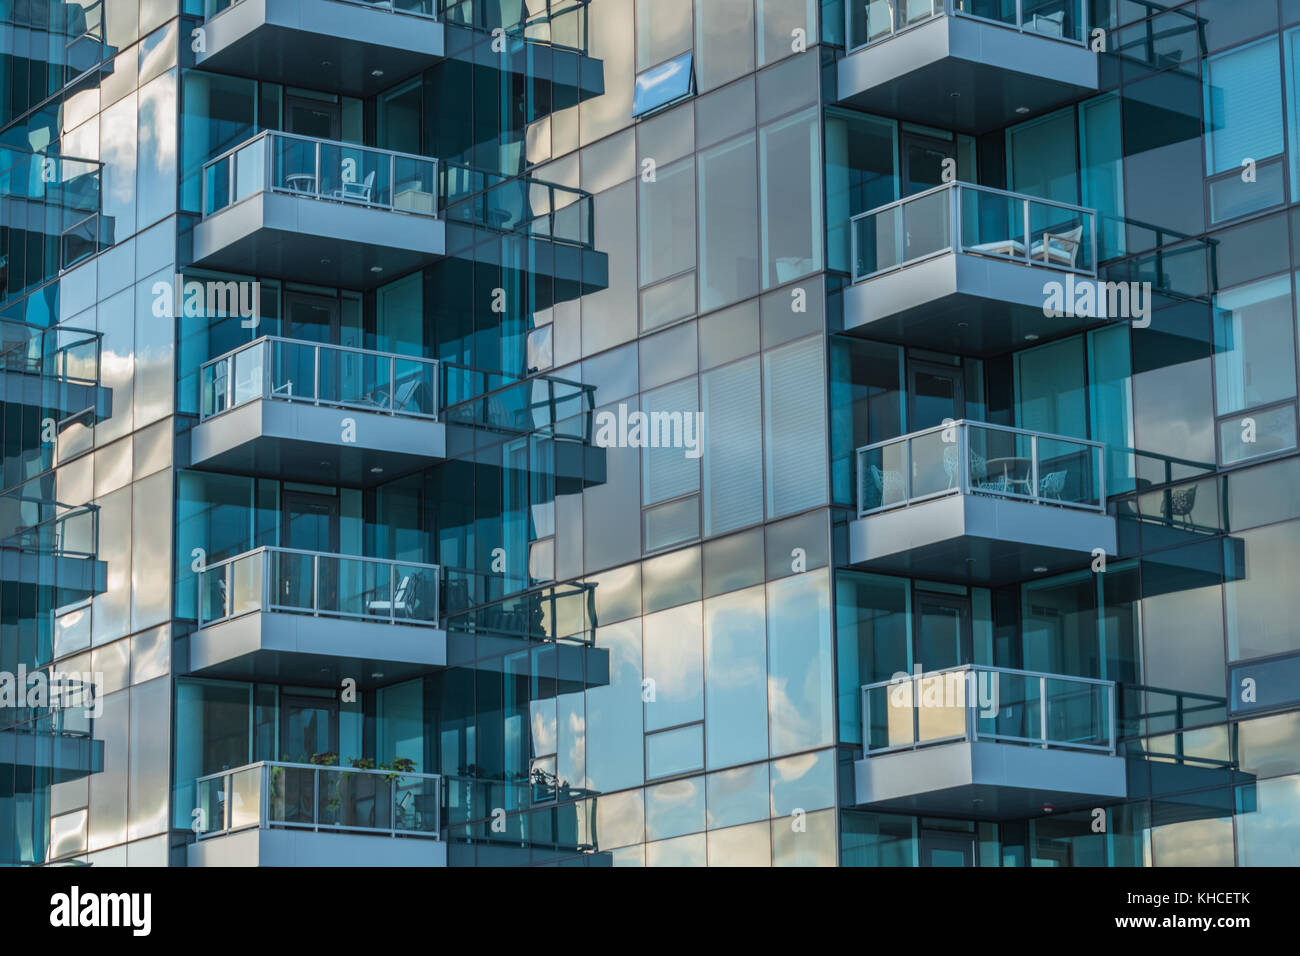 Glass Balconies Reflect Morning Light on modern skyscraper - Stock Image